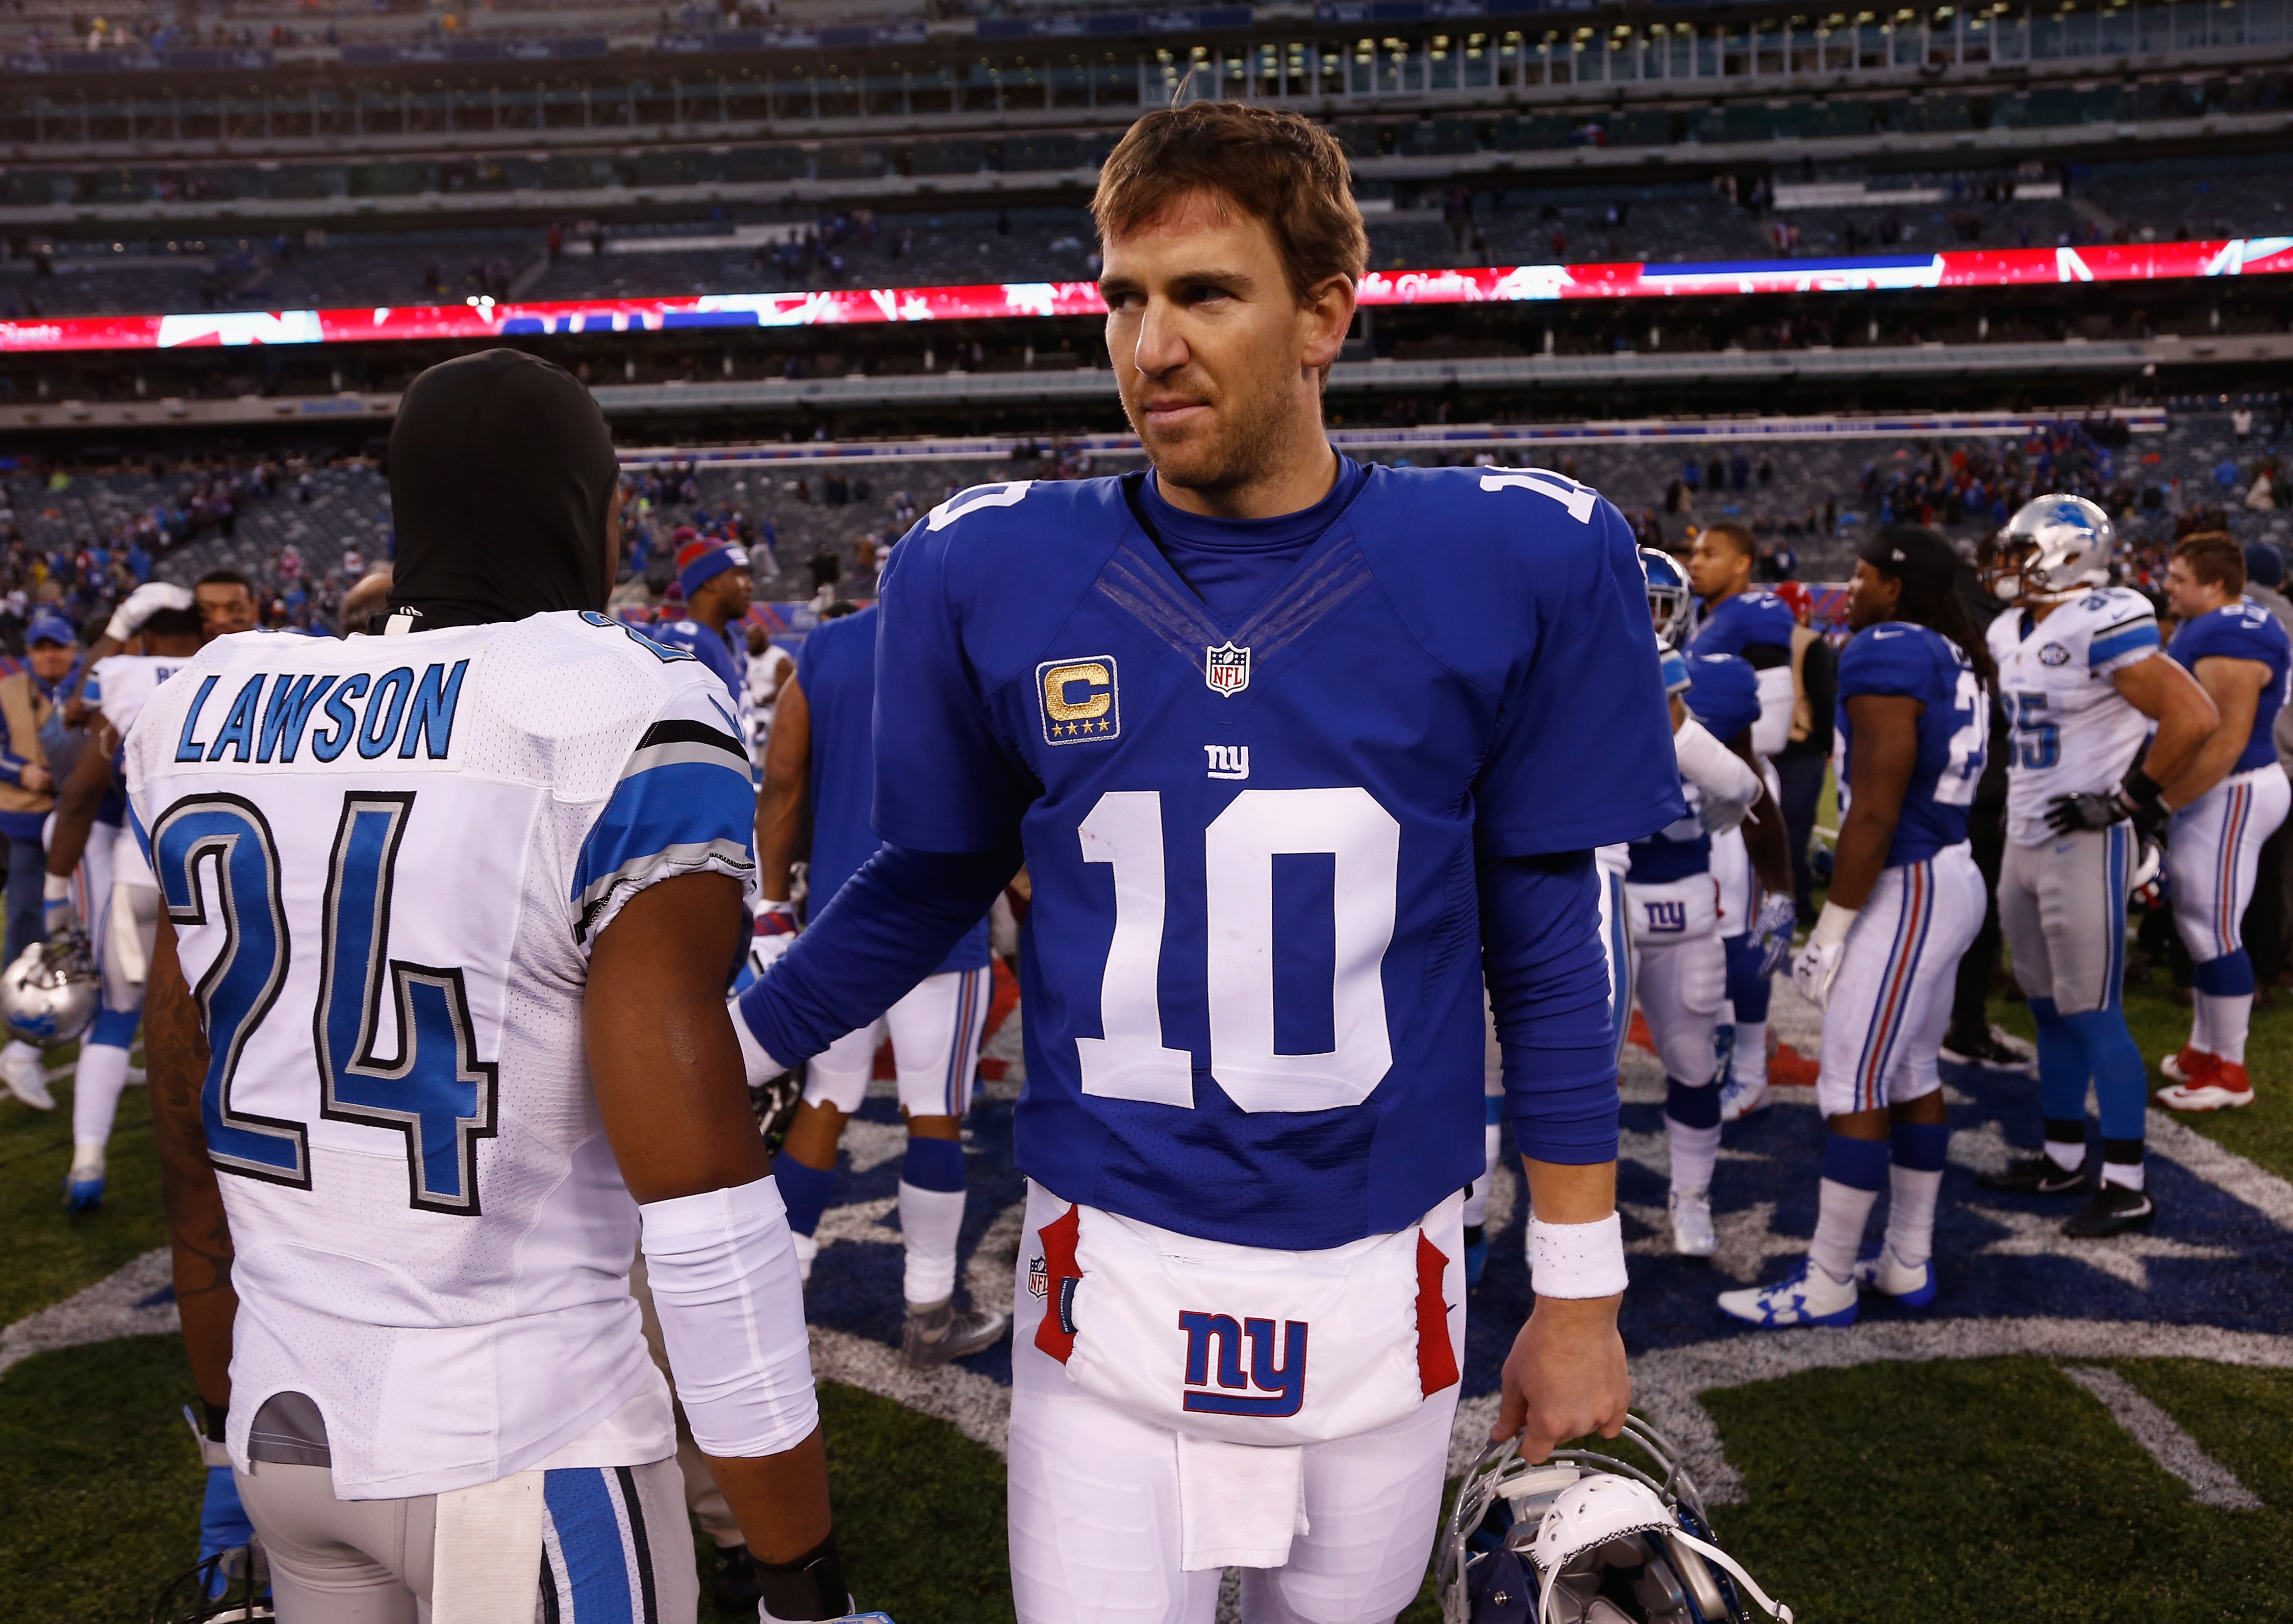 'SLOPPY' - Giants Head Coach Dumps On Eli Manning For Latest Loss